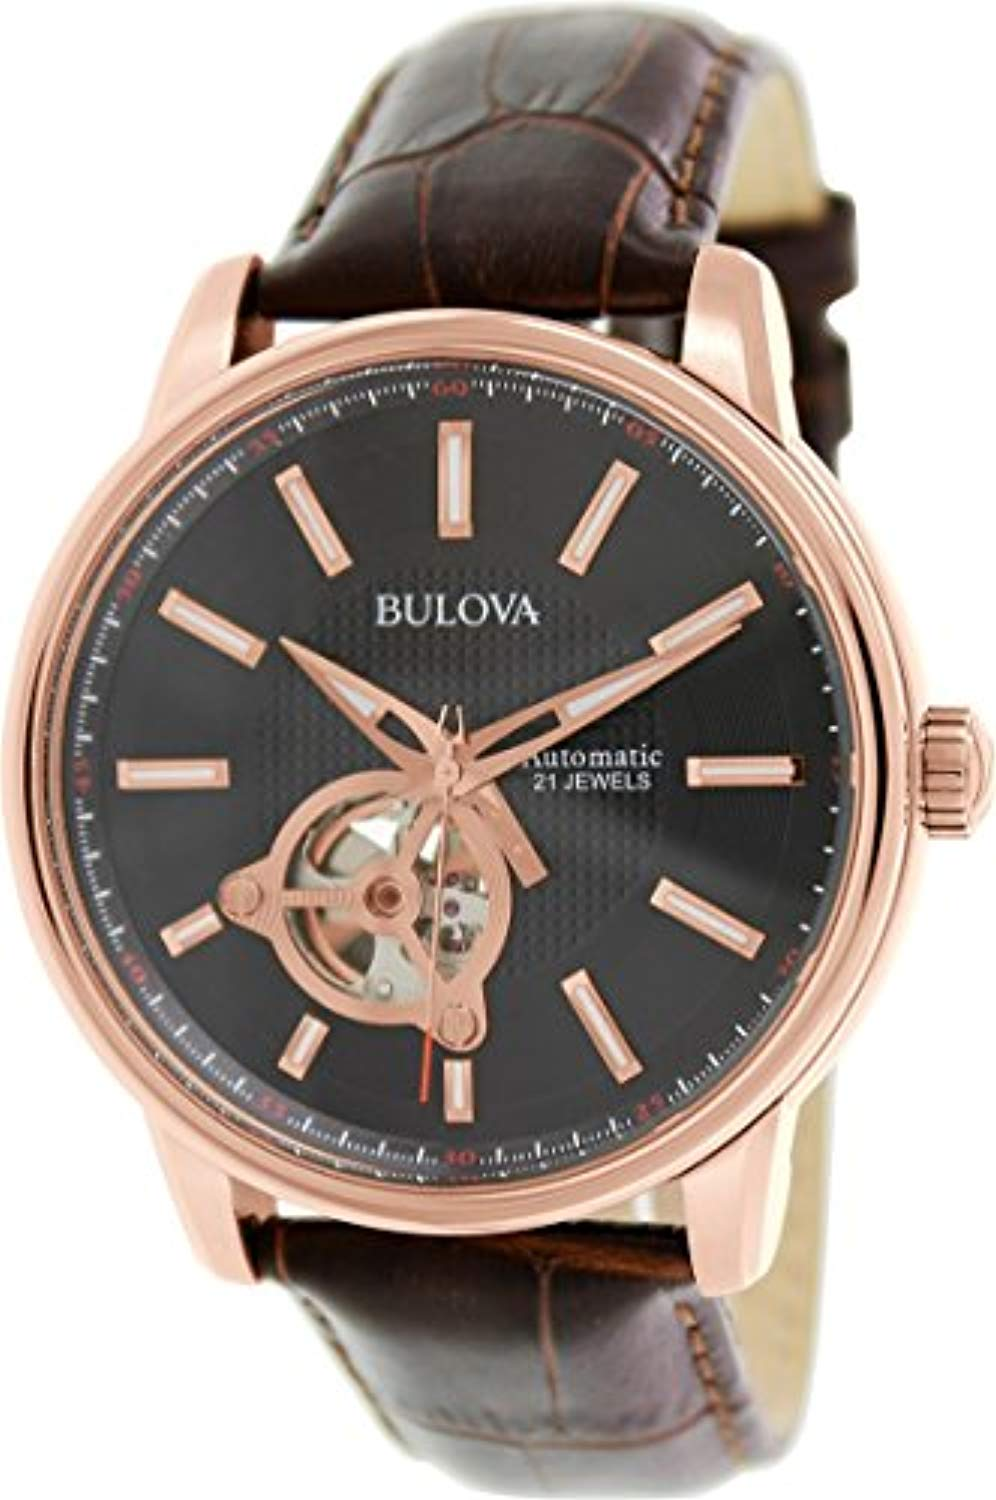 Bulova Watch Men's Classic 45mm Automatic Leather Strap Wristwatch